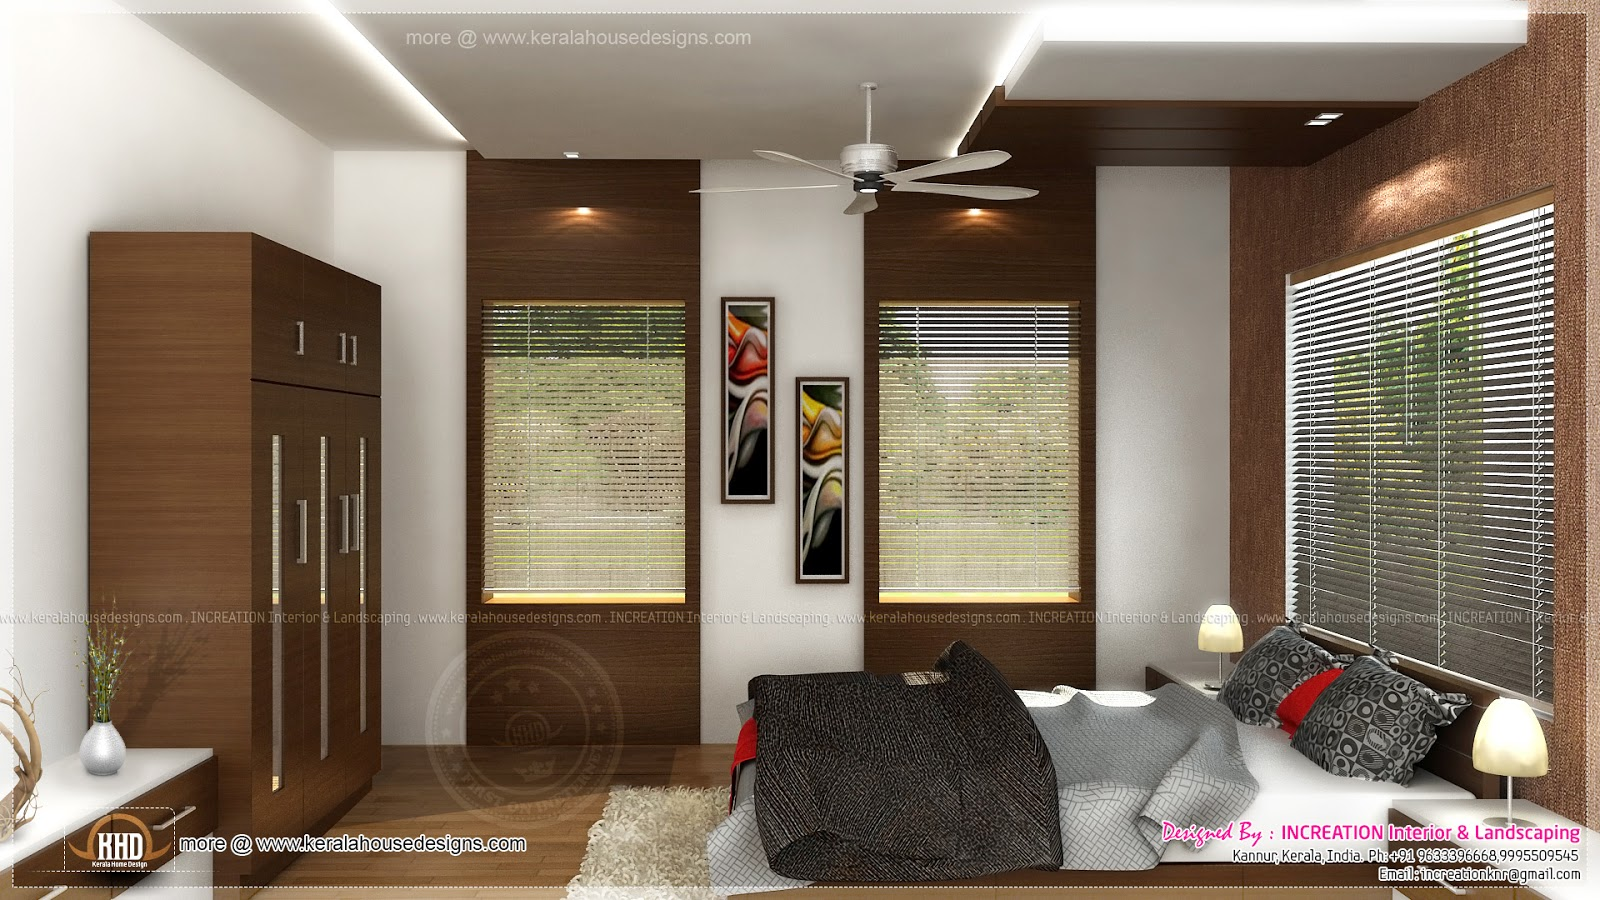 bedroom design kerala style HOME DECORATION